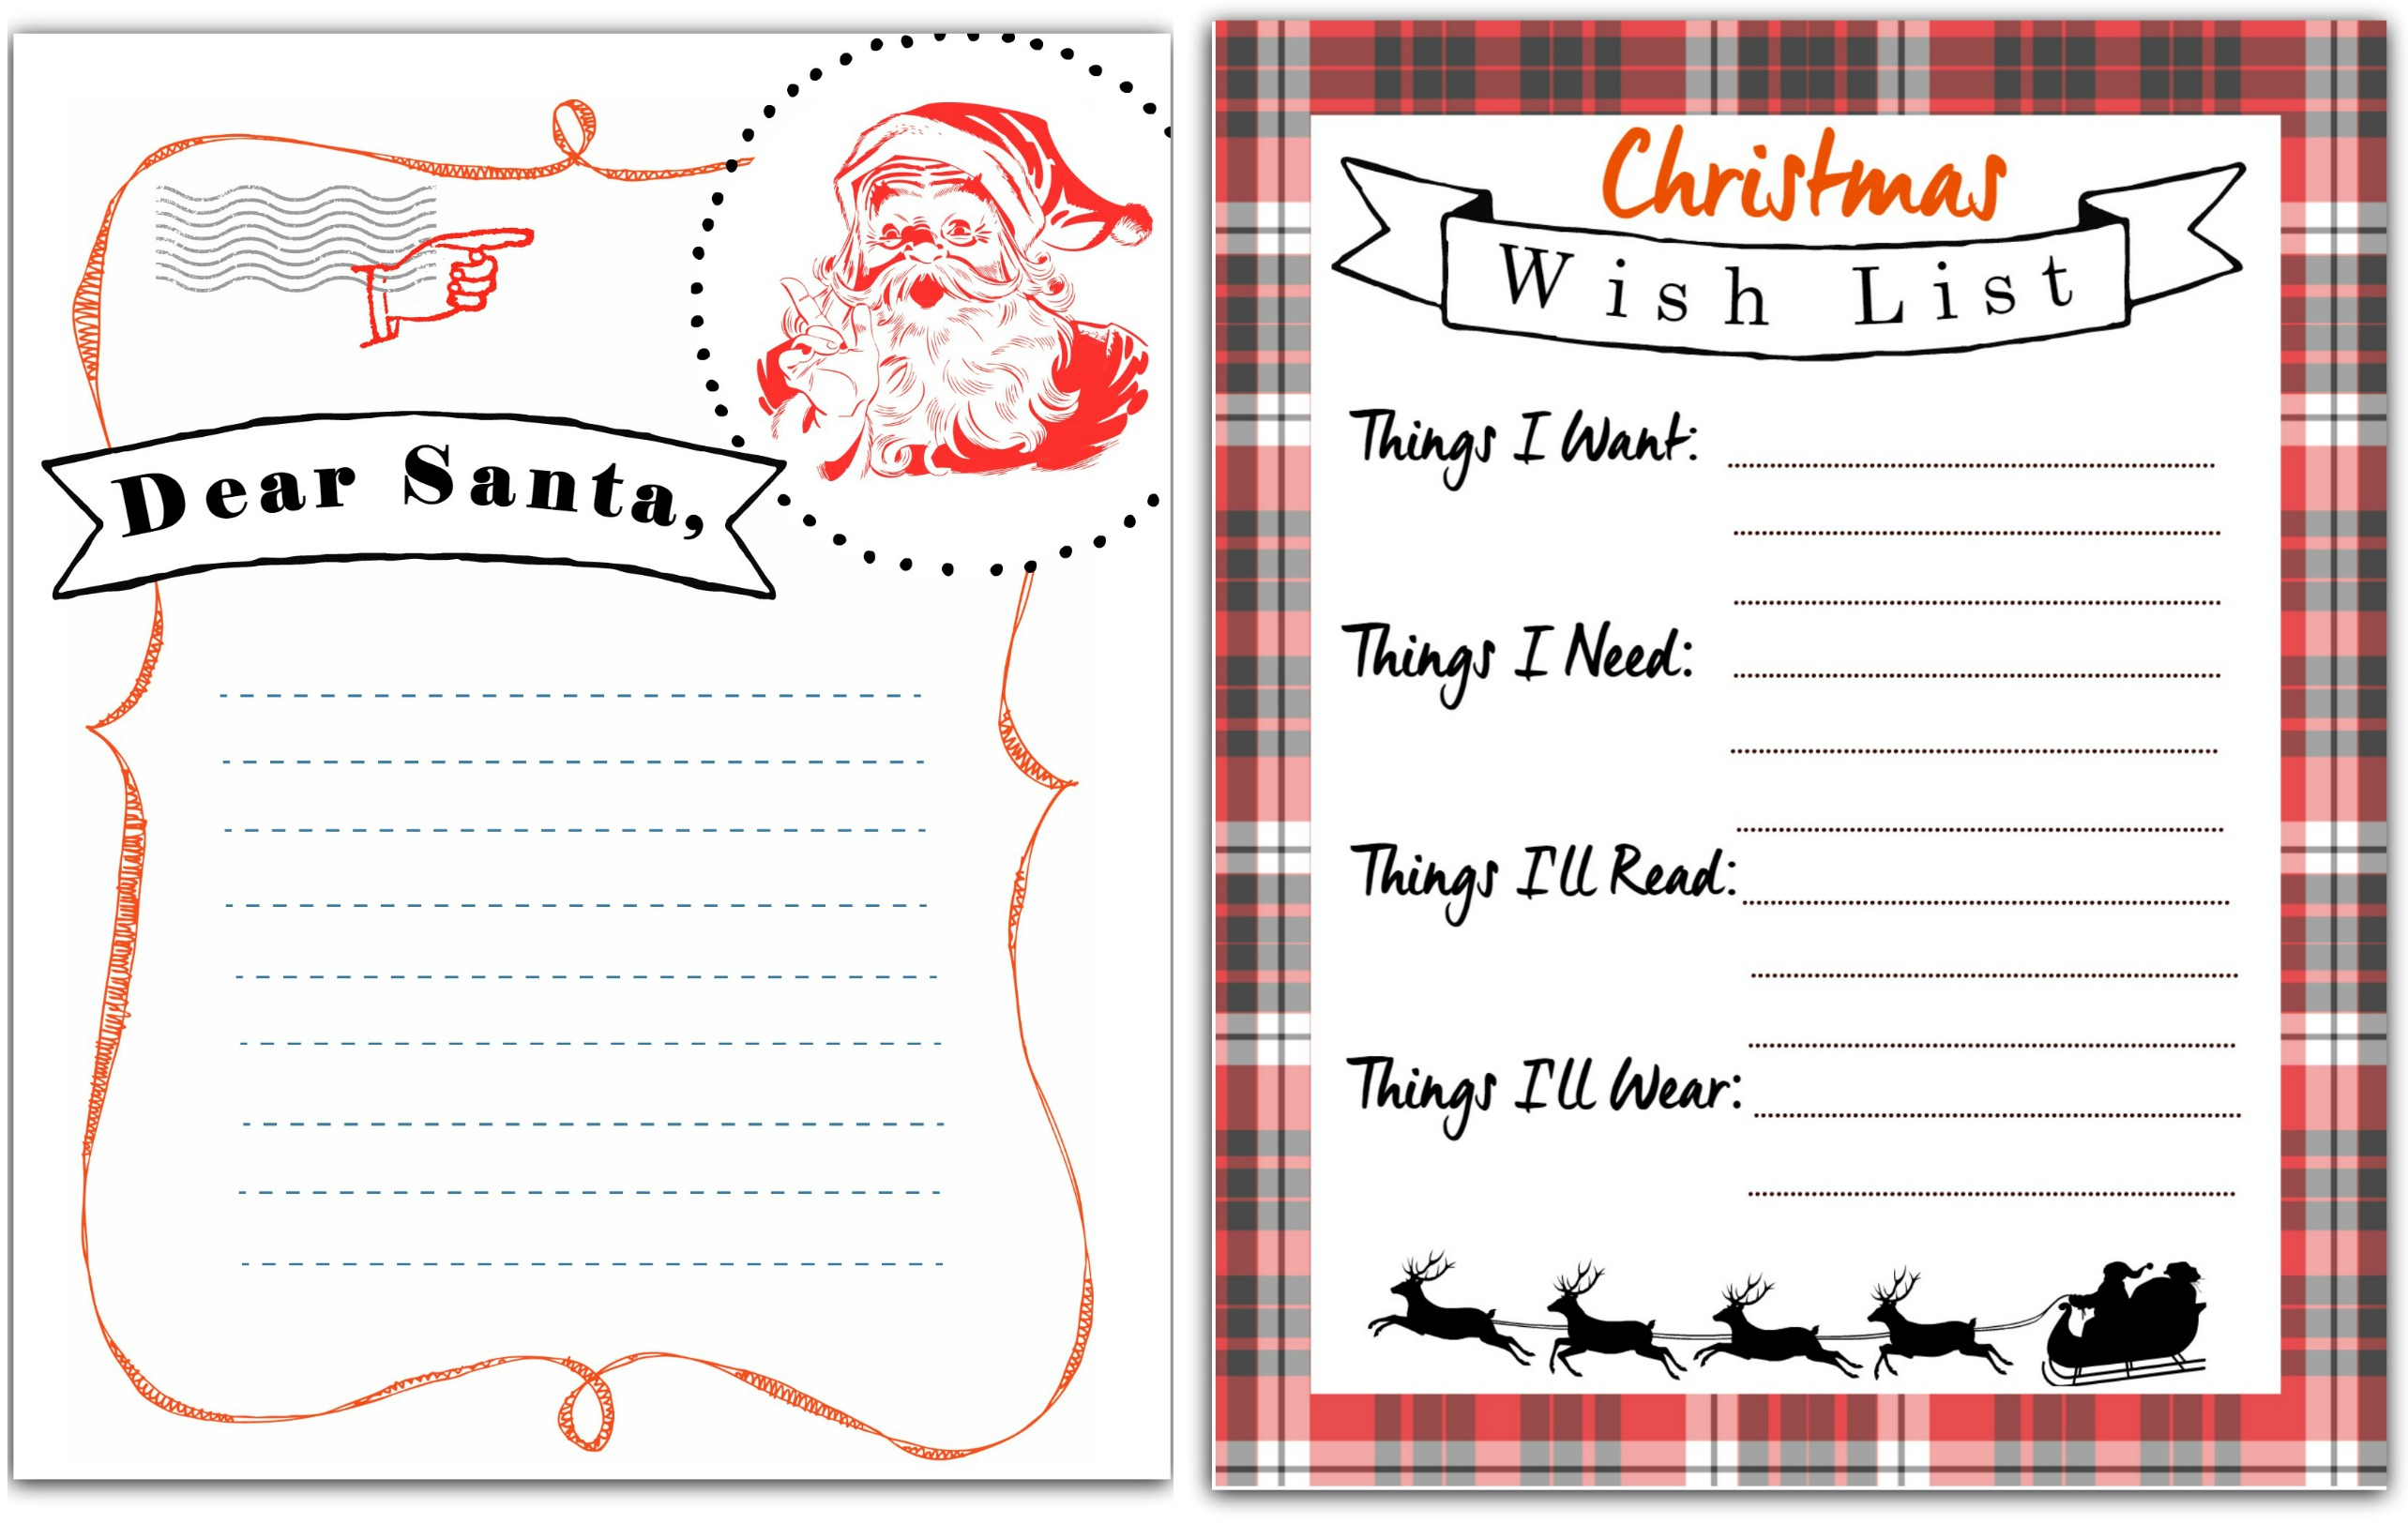 photograph regarding Christmas Wish List Printable referred to as Free of charge Printable Letter in direction of Santa Xmas Need Record - Hip2Preserve